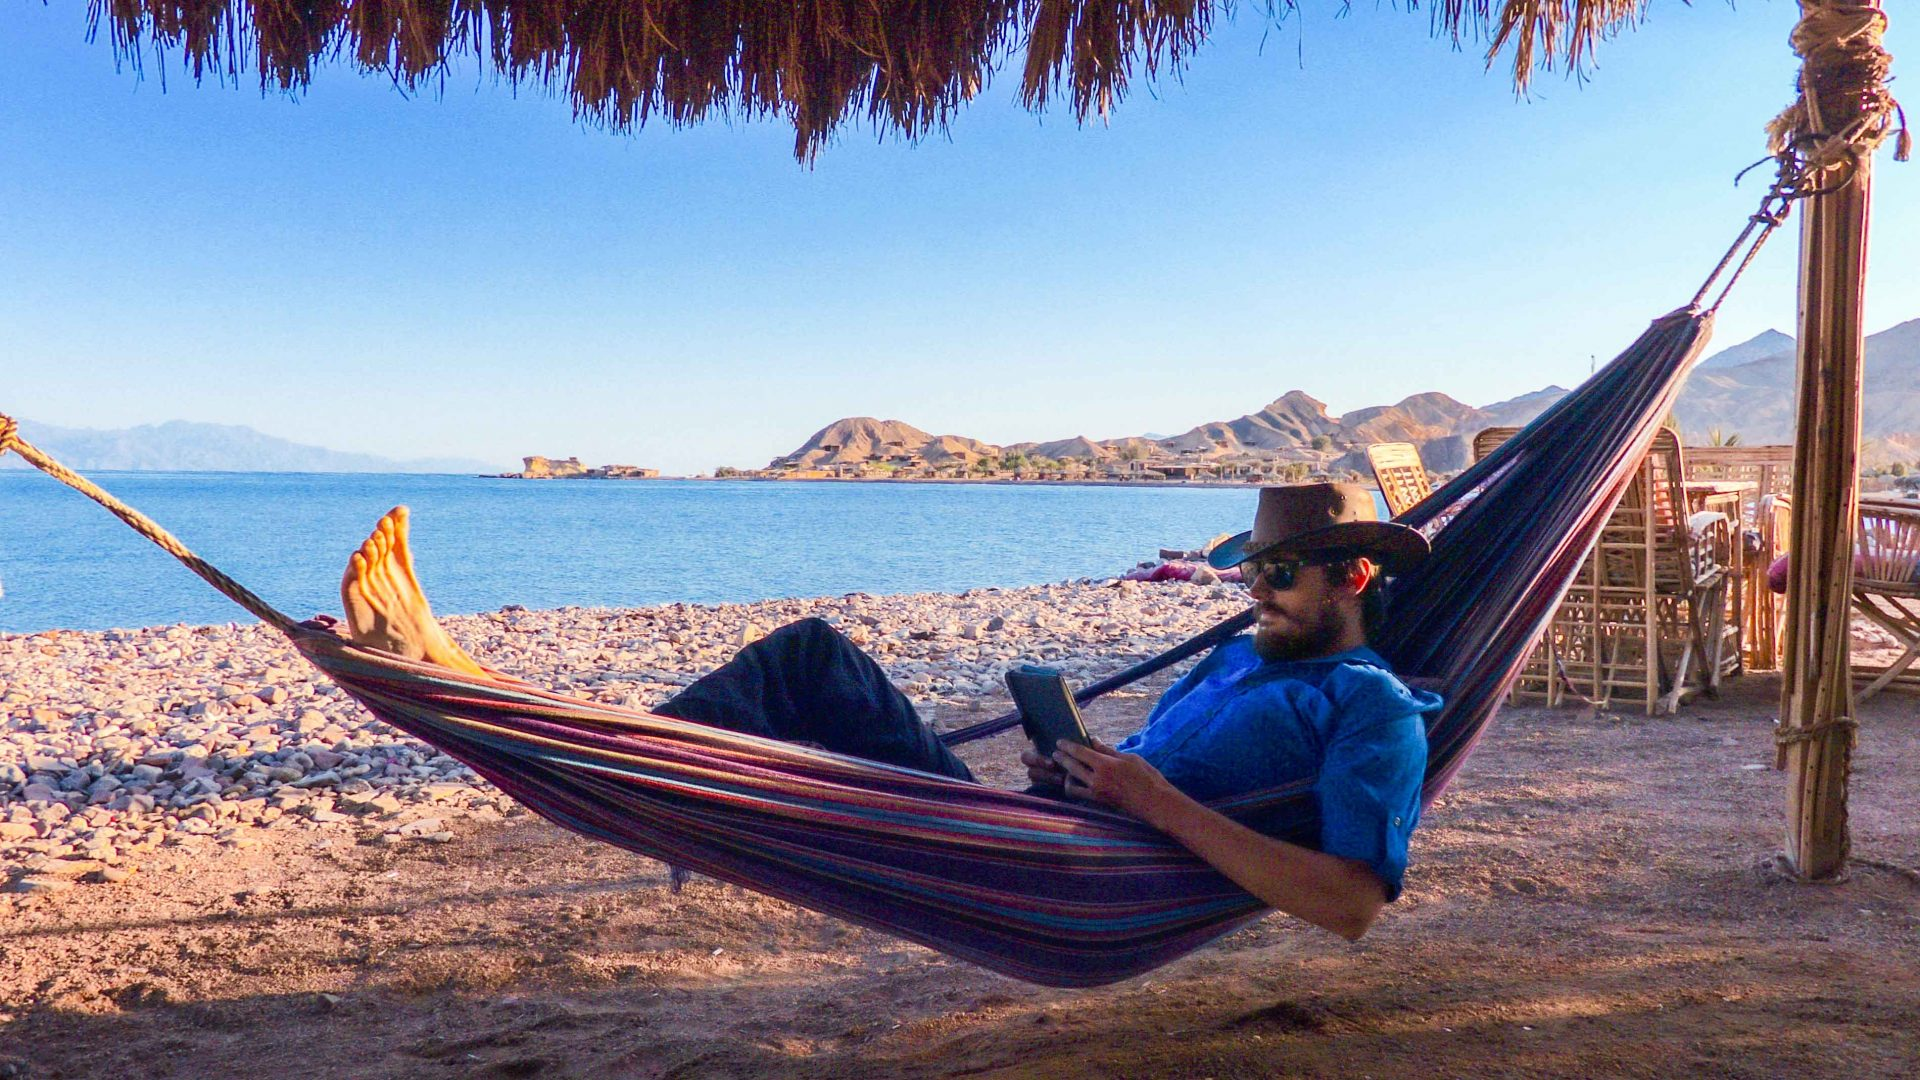 Leon McCarron relaxes in a hammock on a Sinai beach in Egypt.